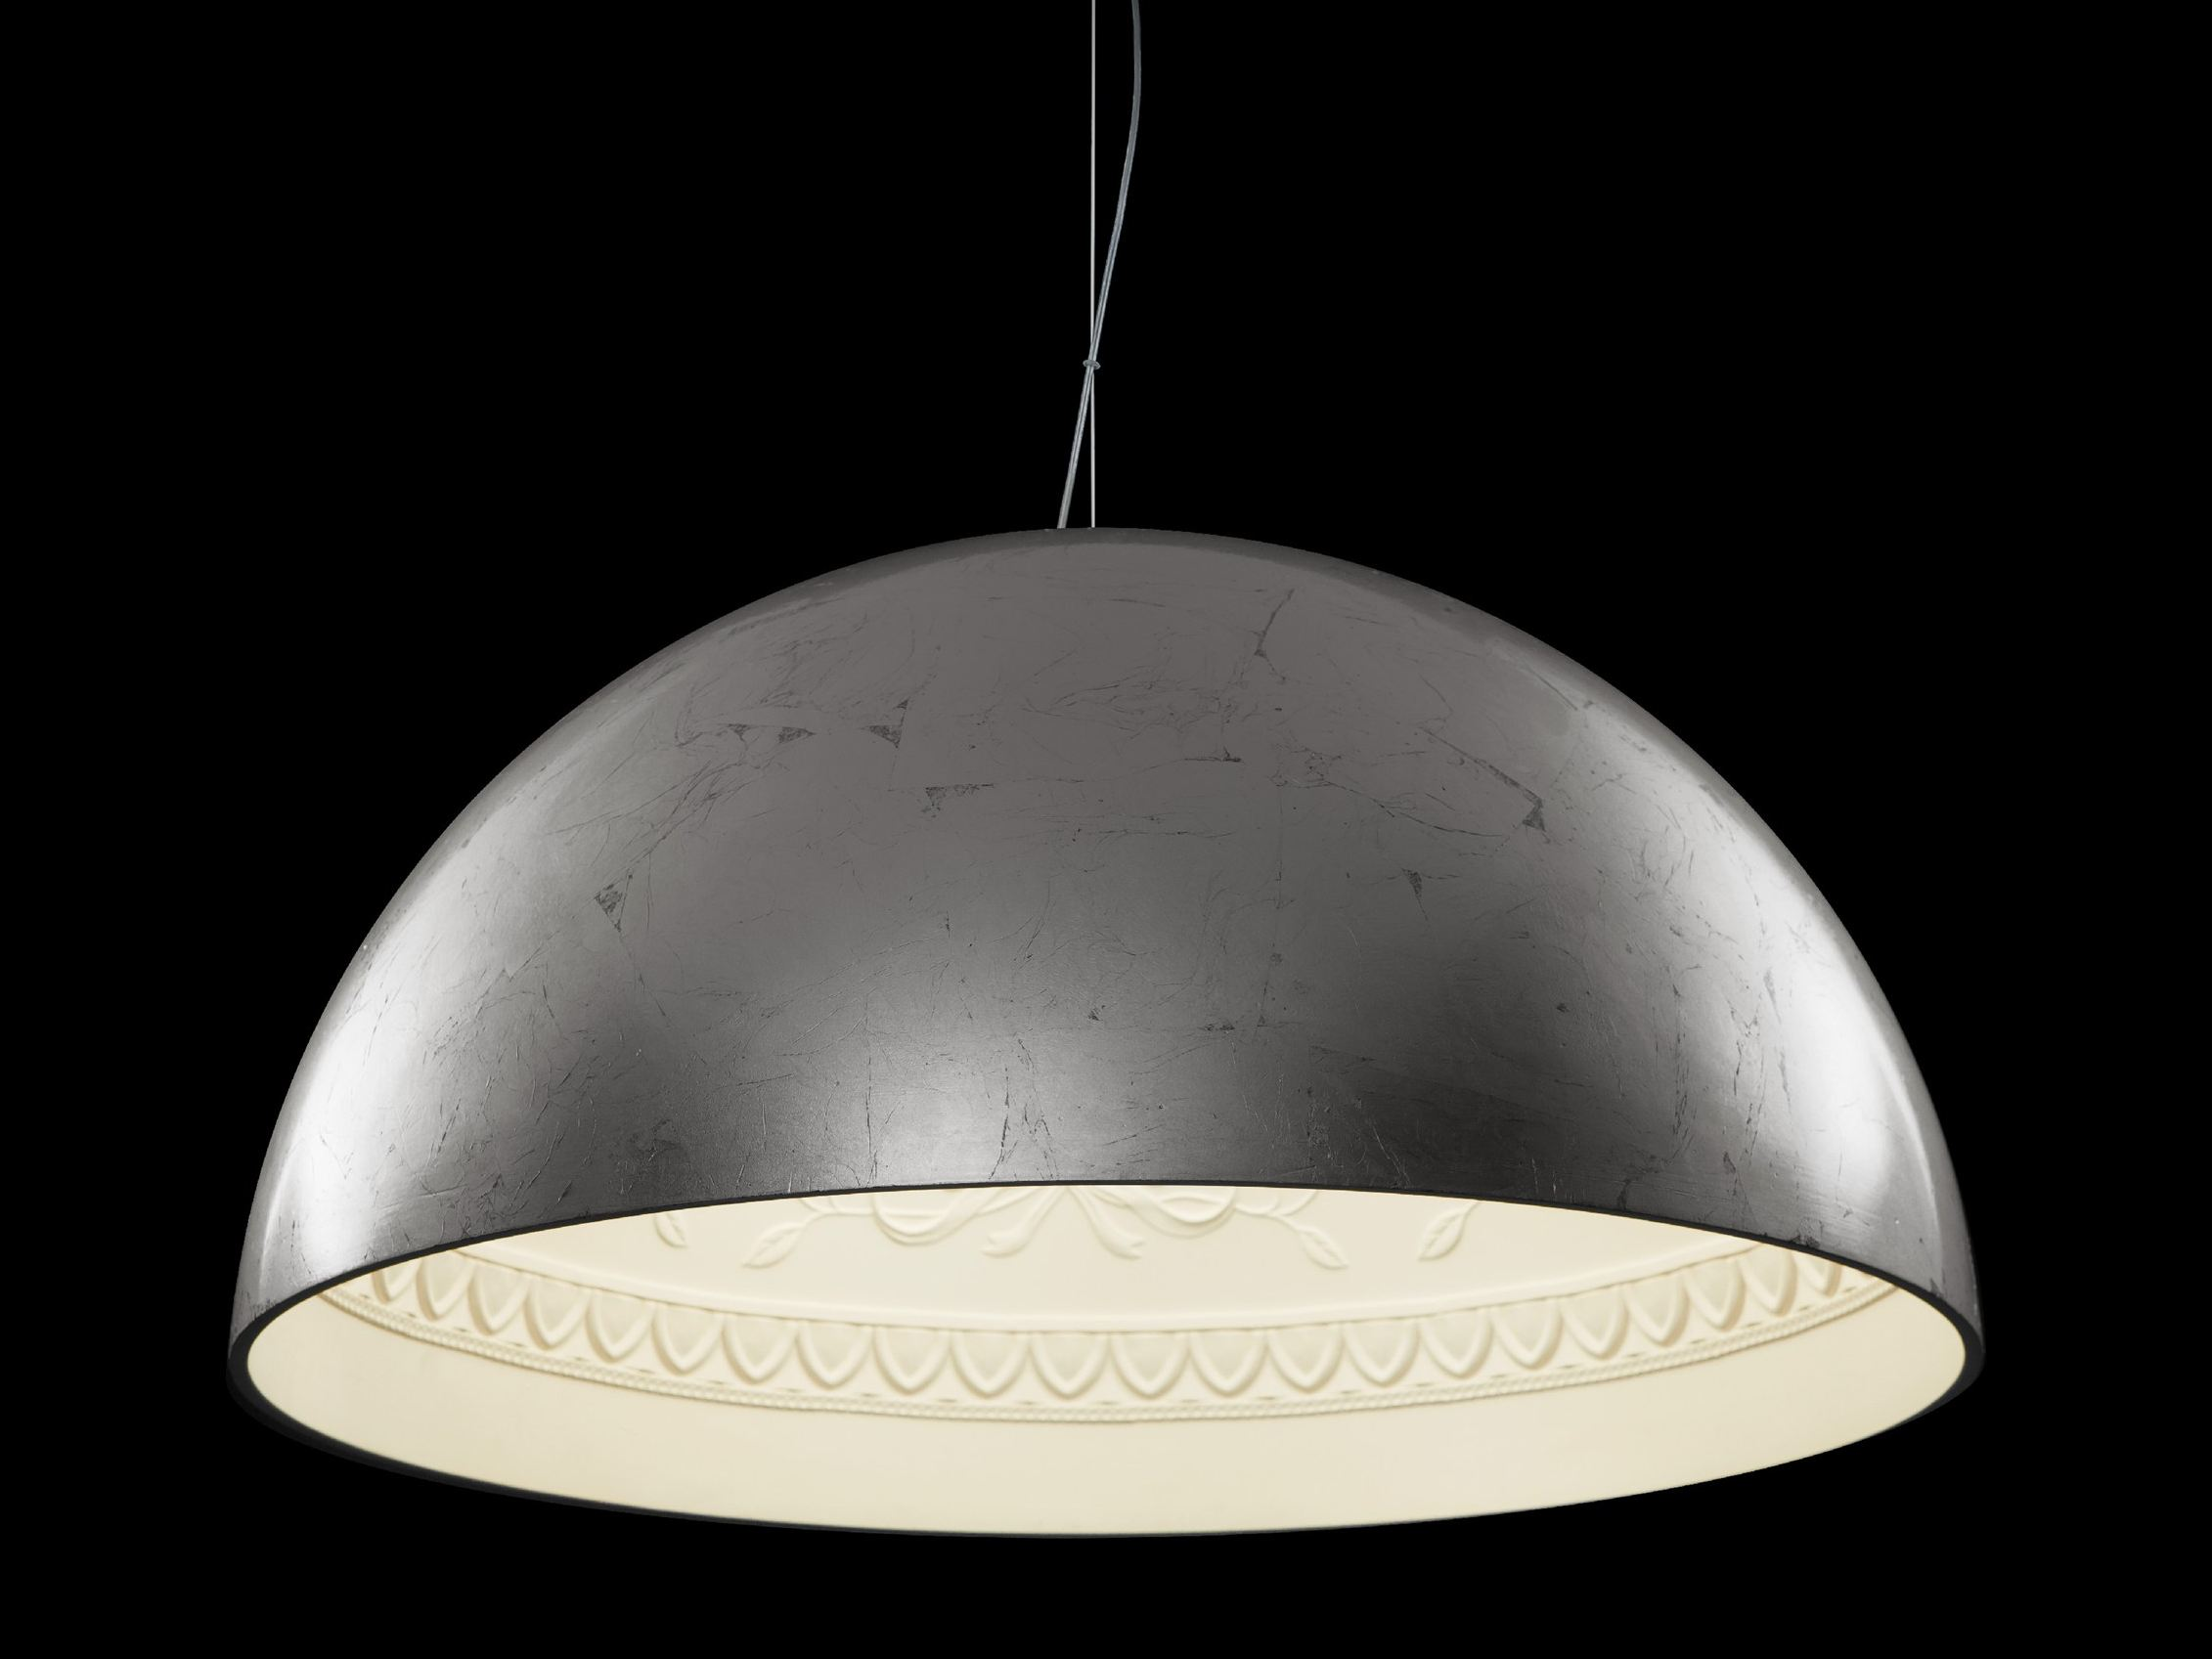 Lighting Metal Lux Archiproducts